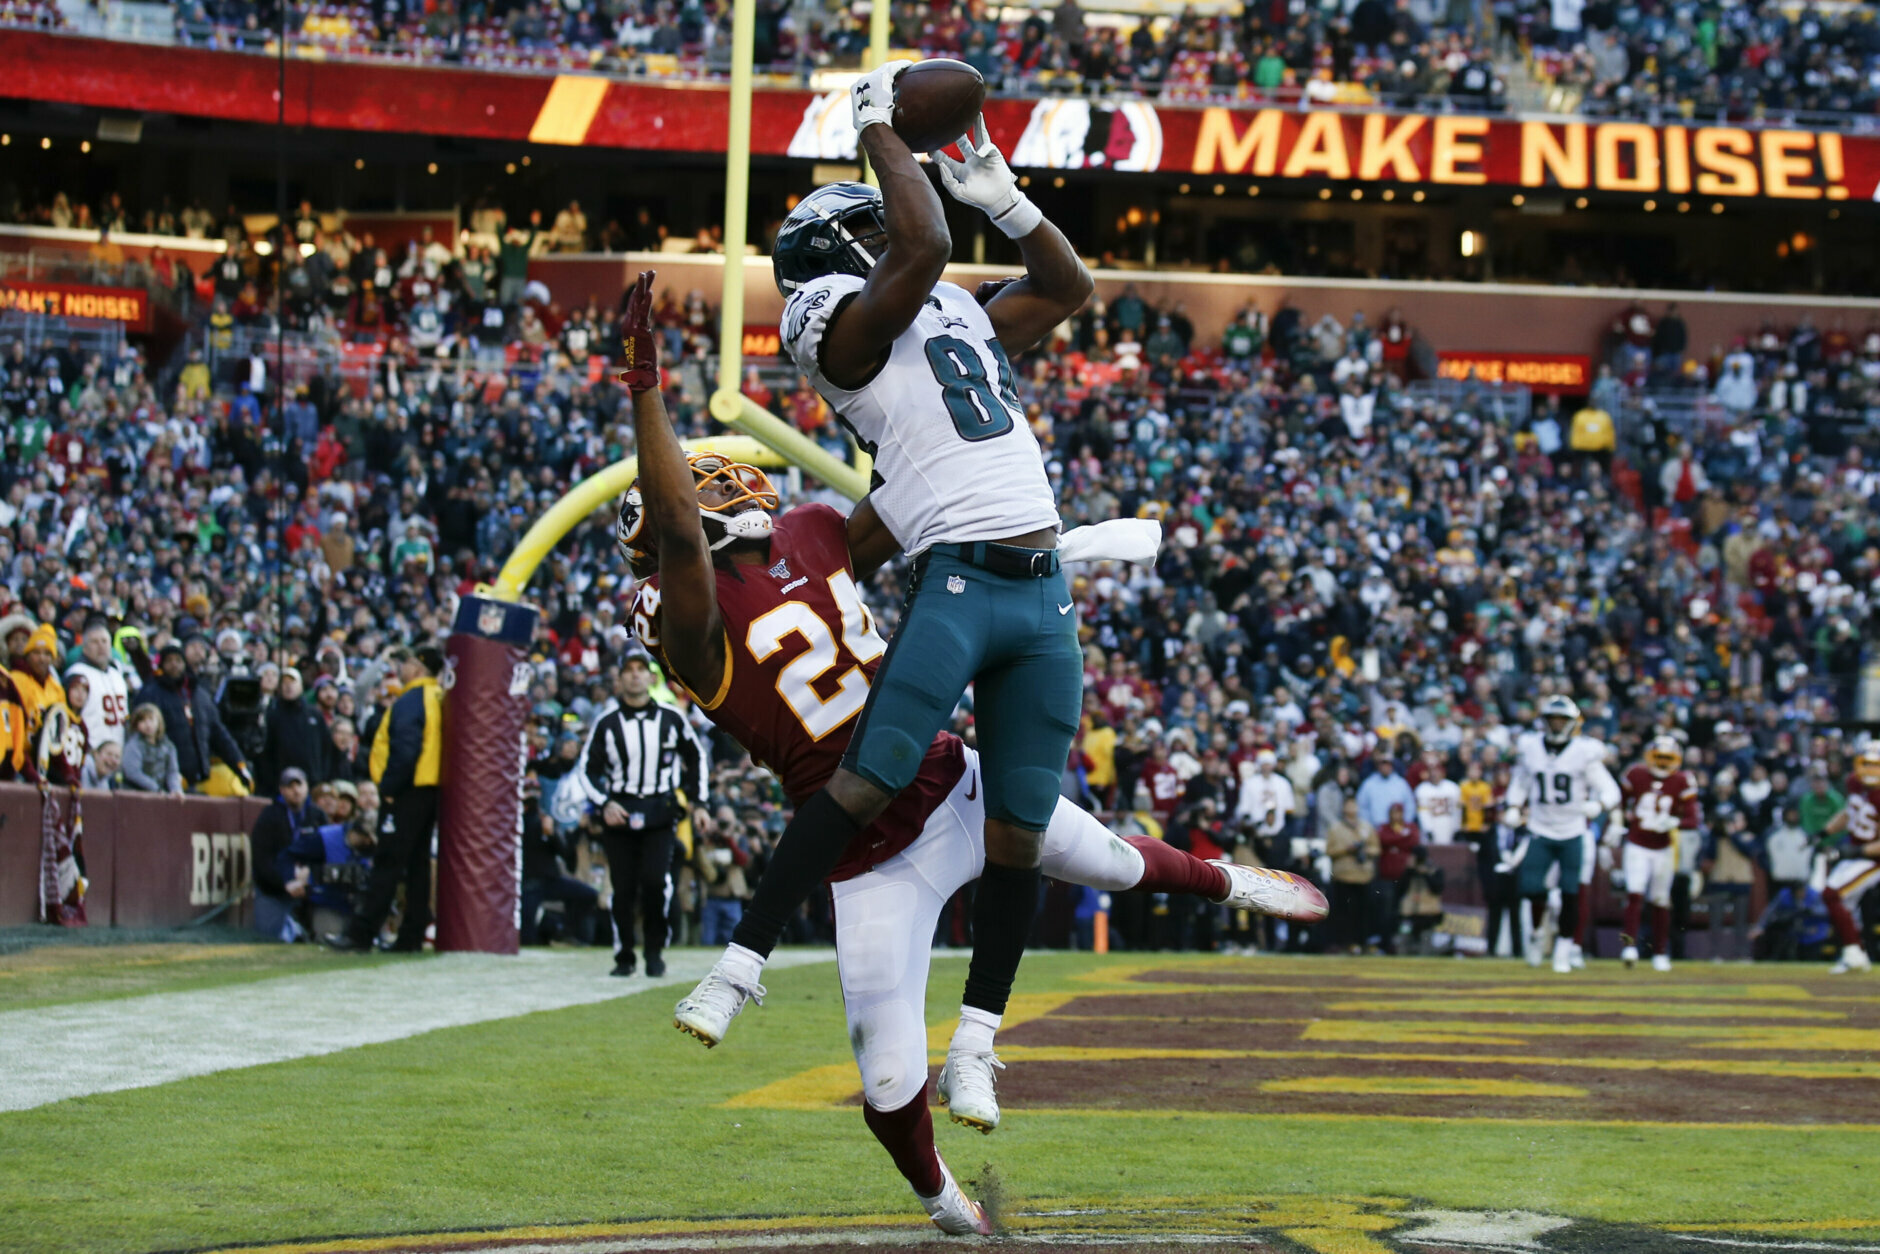 "<p><b><i>Eagles 37</i></b><br /> <b><i>Redskins 27</i></b></p> <p>Boy, where do I start? Adrian Peterson <a href=""https://twitter.com/ESPNStatsInfo/status/1206316694660165632?s=20"" target=""_blank"" rel=""noopener"">solidifying his case for the Hall of Fame</a>. Dwayne Haskins and Terry McLaurin having breakout games with Urban Meyer in the owner&#8217;s box. The <a href=""https://www.si.com/gambling/2019/12/15/eagles-redskins-last-second-td-bad-beats-nfl-season"" target=""_blank"" rel=""noopener"">bad beat</a> to end all bad beats. But while people laud the Redskins for playing the Eagles close in a game that meant everything to Philly and nothing to Old D.C., I&#8217;m calling out Josh Norman — the league&#8217;s highest-paid corner finally on the field after weeks on the bench — for getting torched for the game-winning touchdown by a guy cut six times and then <a href=""https://www.espn.com/nfl/story/_/id/28308702/got-play-cards-dealt"" target=""_blank"" rel=""noopener"">talking nonsense in the aftermath</a>. If I&#8217;m Meyer, I&#8217;m not touching this gig and if I&#8217;m the NFL, <a href=""https://www.usatoday.com/story/sports/columnist/dan-wolken/2019/12/15/urban-meyer-not-fit-nfl-coaching-job-skills-do-not-translate/2657883001/"" target=""_blank"" rel=""noopener"">I&#8217;m not touching Meyer</a>.</p>"